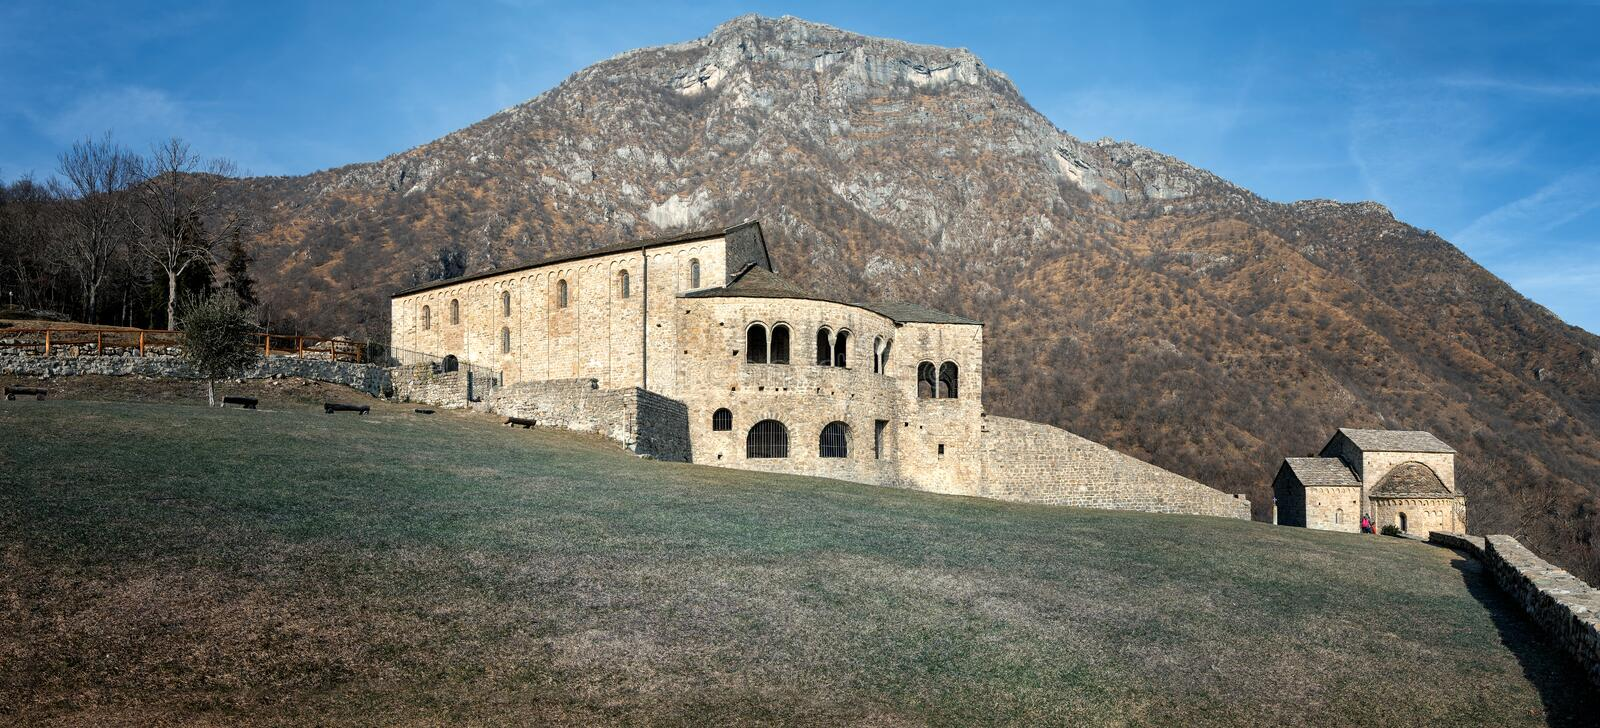 Panoramic view of the Abbey of Saint Peter in Civate. Beautiful panoramic view of the Abbey of Saint Peter between the mountains in Civate, Lombardy, Italy royalty free stock photography